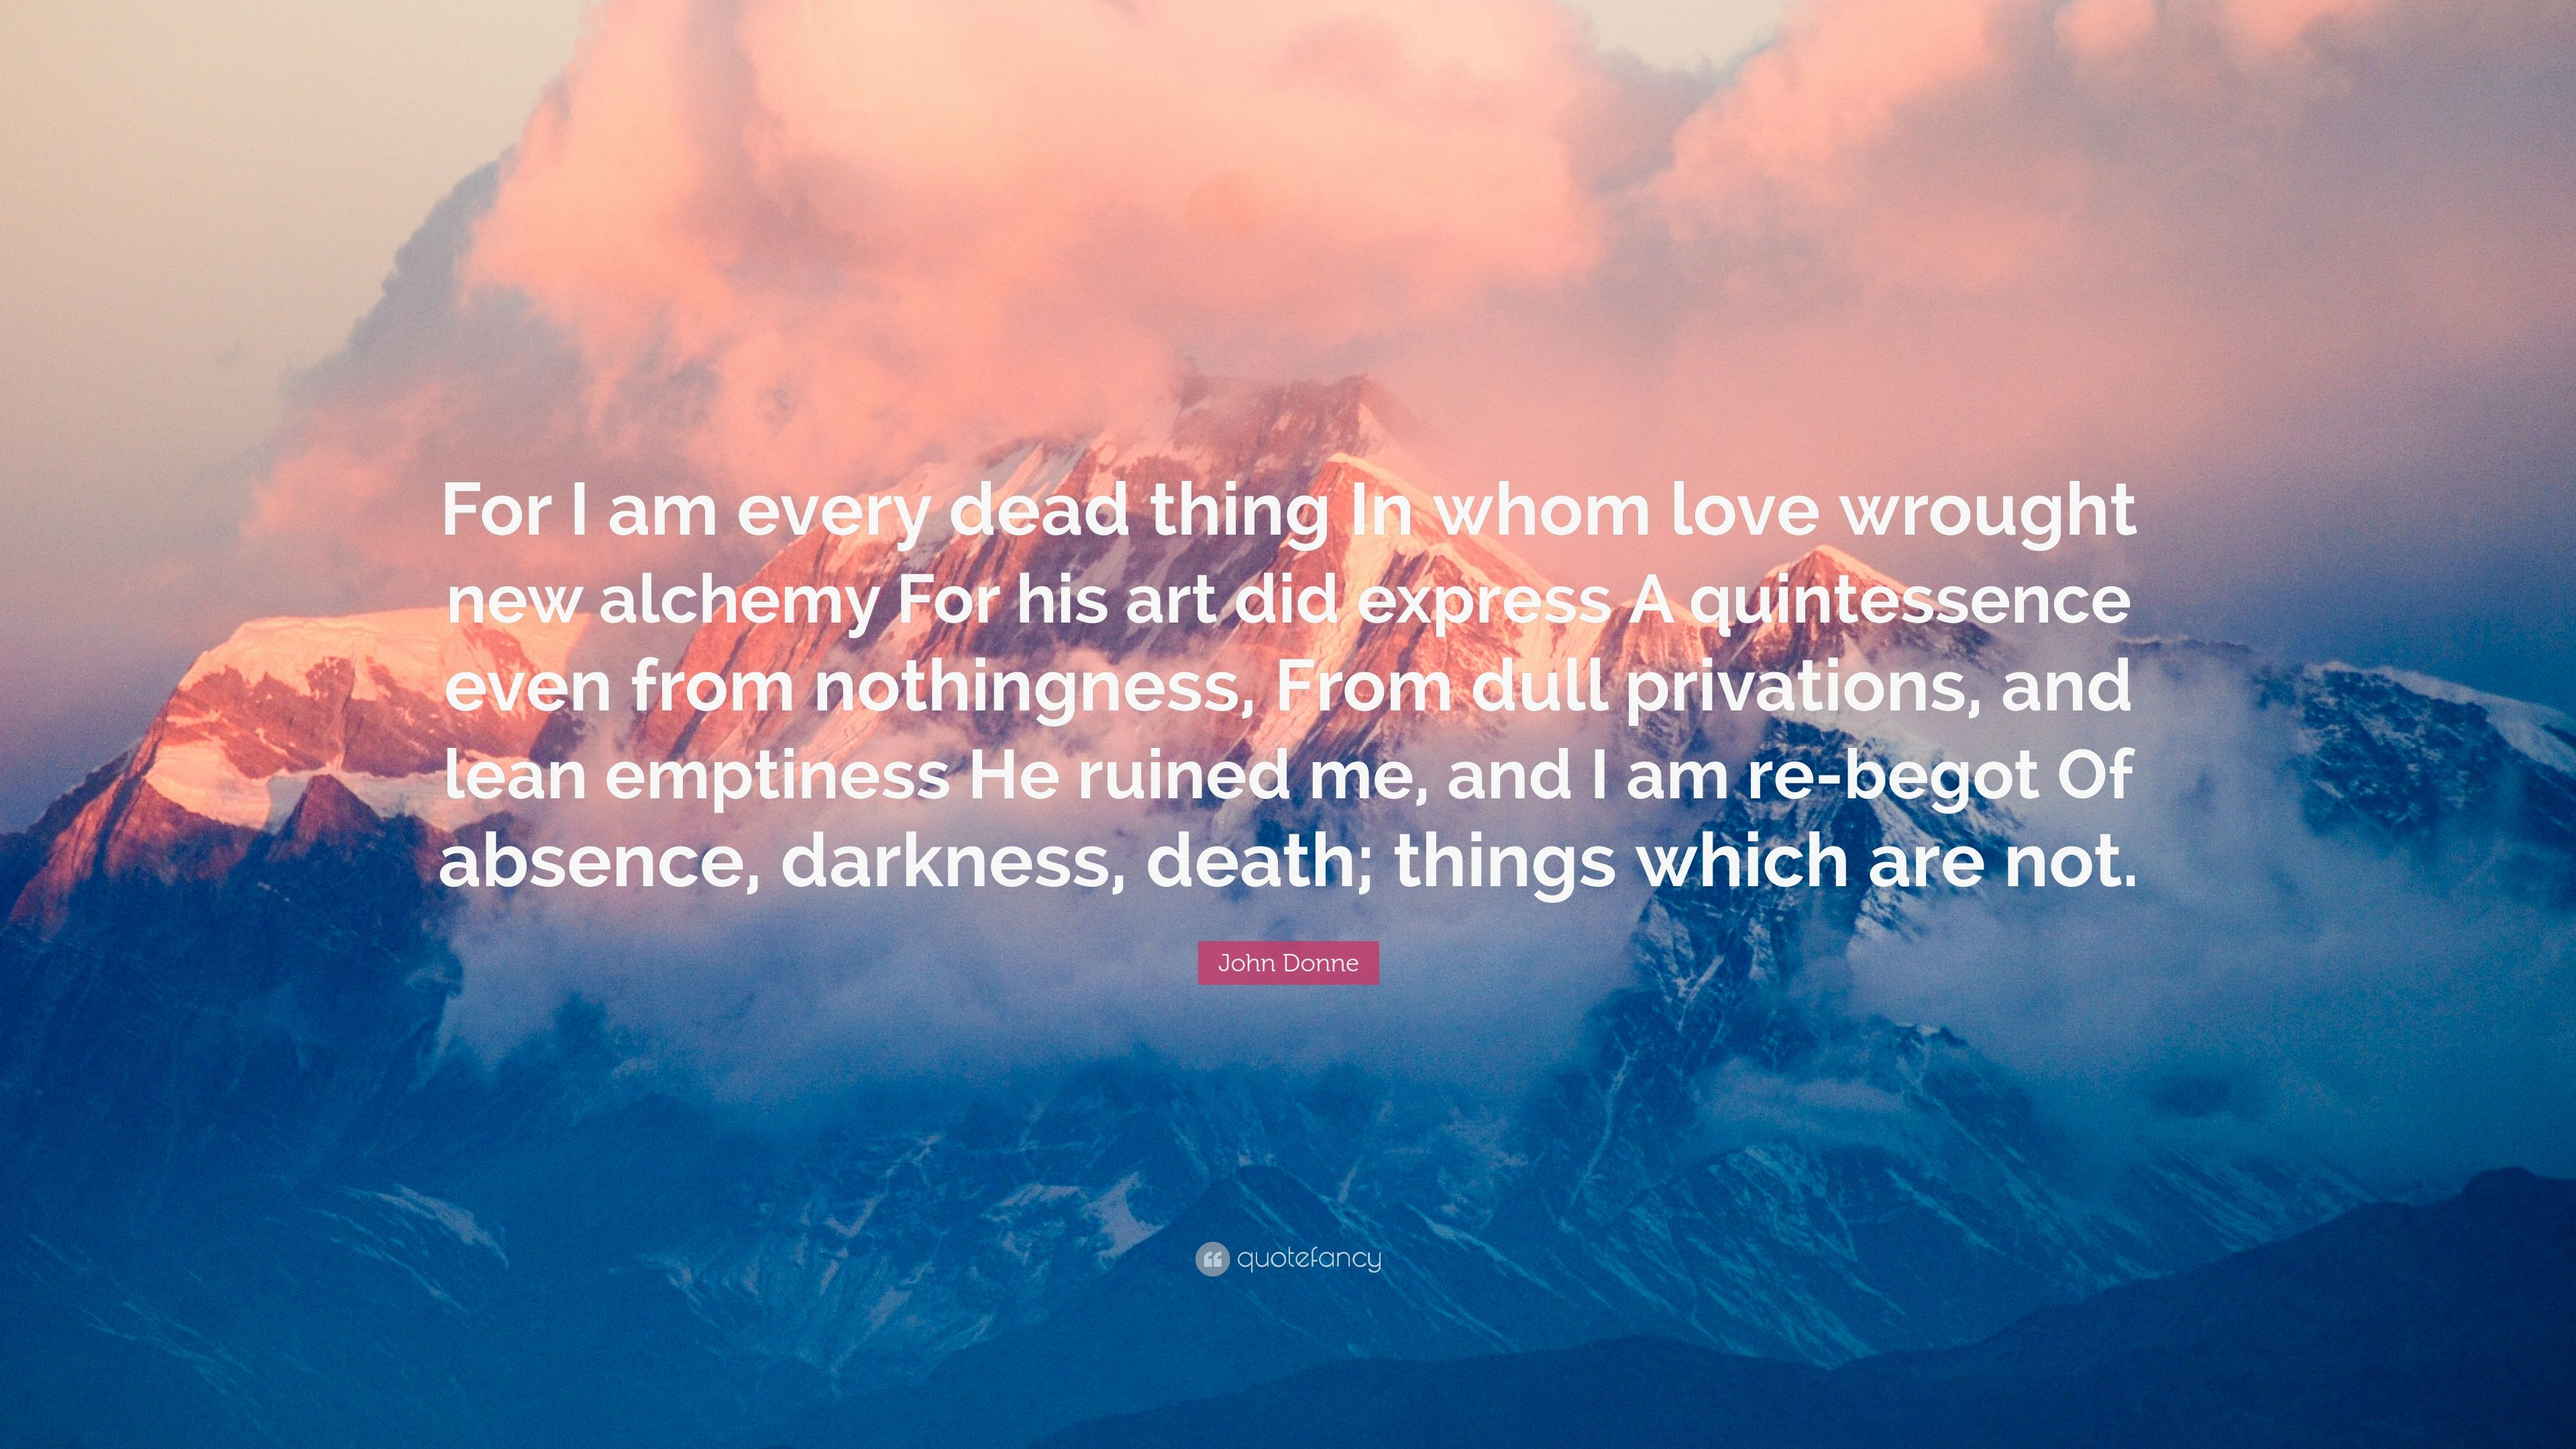 """john donnes loves alchemy essay John donne (1572-1631) and ben johnson i will analyze and compare donne's """"love's alchemy"""" and wa """"donne and paracelsus: an essay in."""